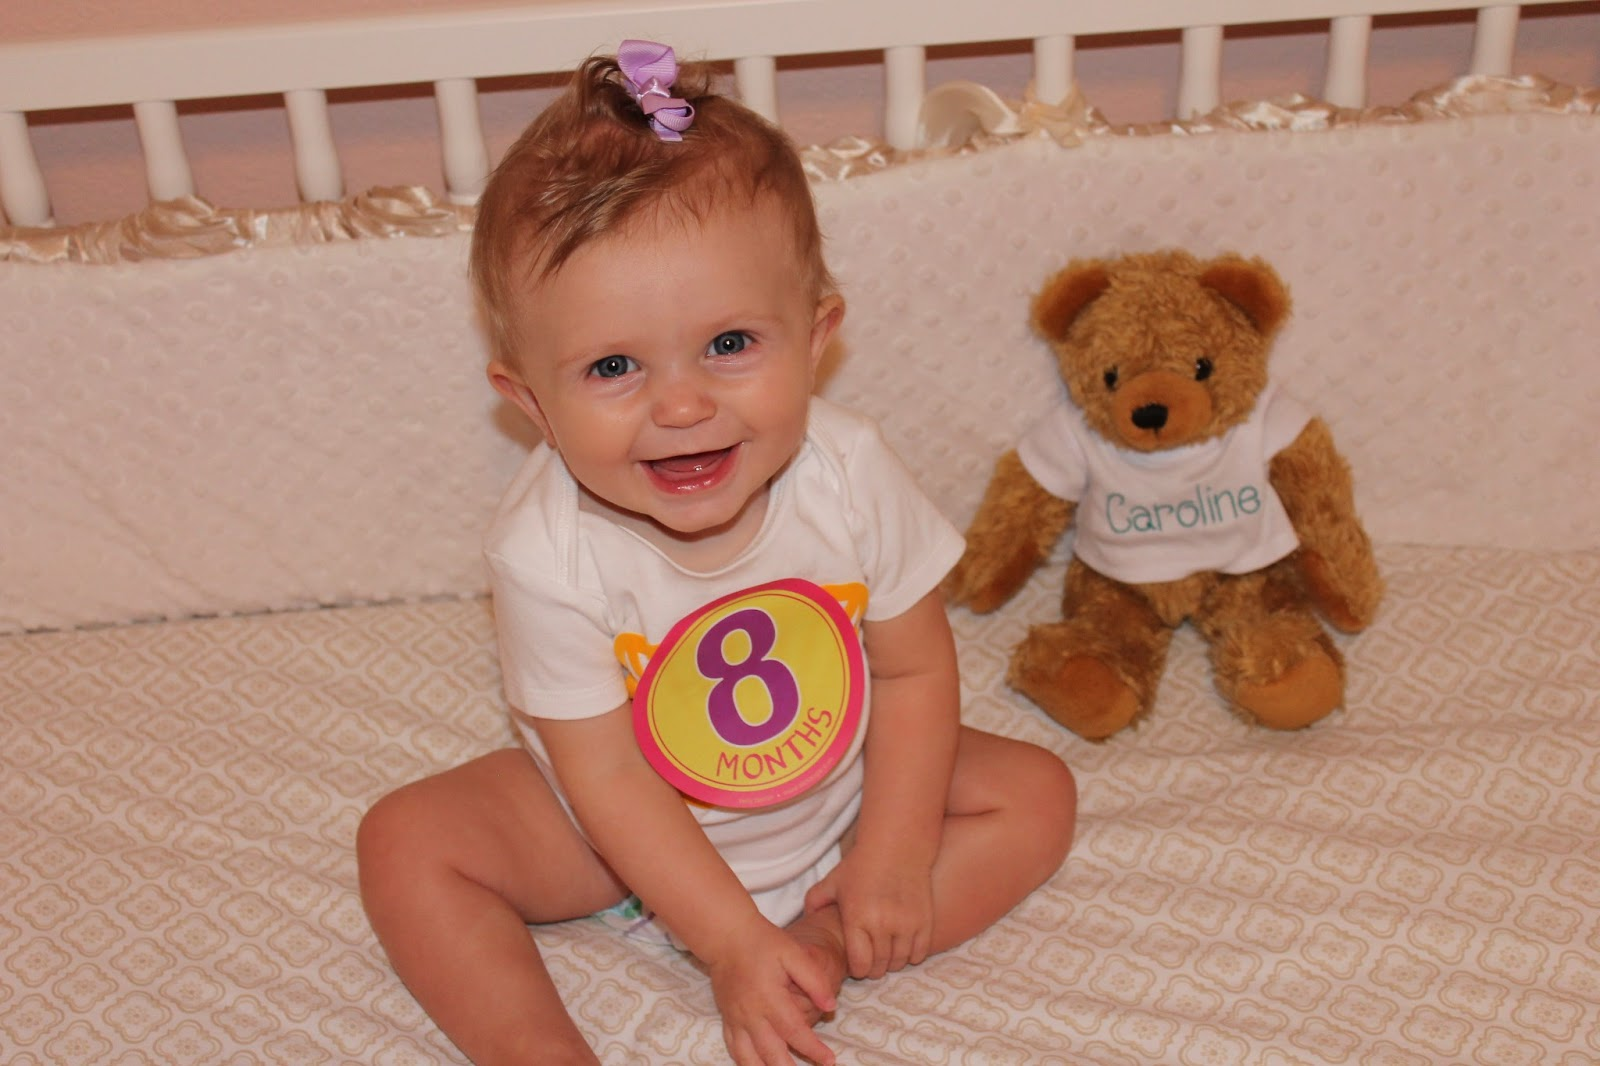 Best Baby Toys For 8 Months Old : Life as the fites: 8 months old